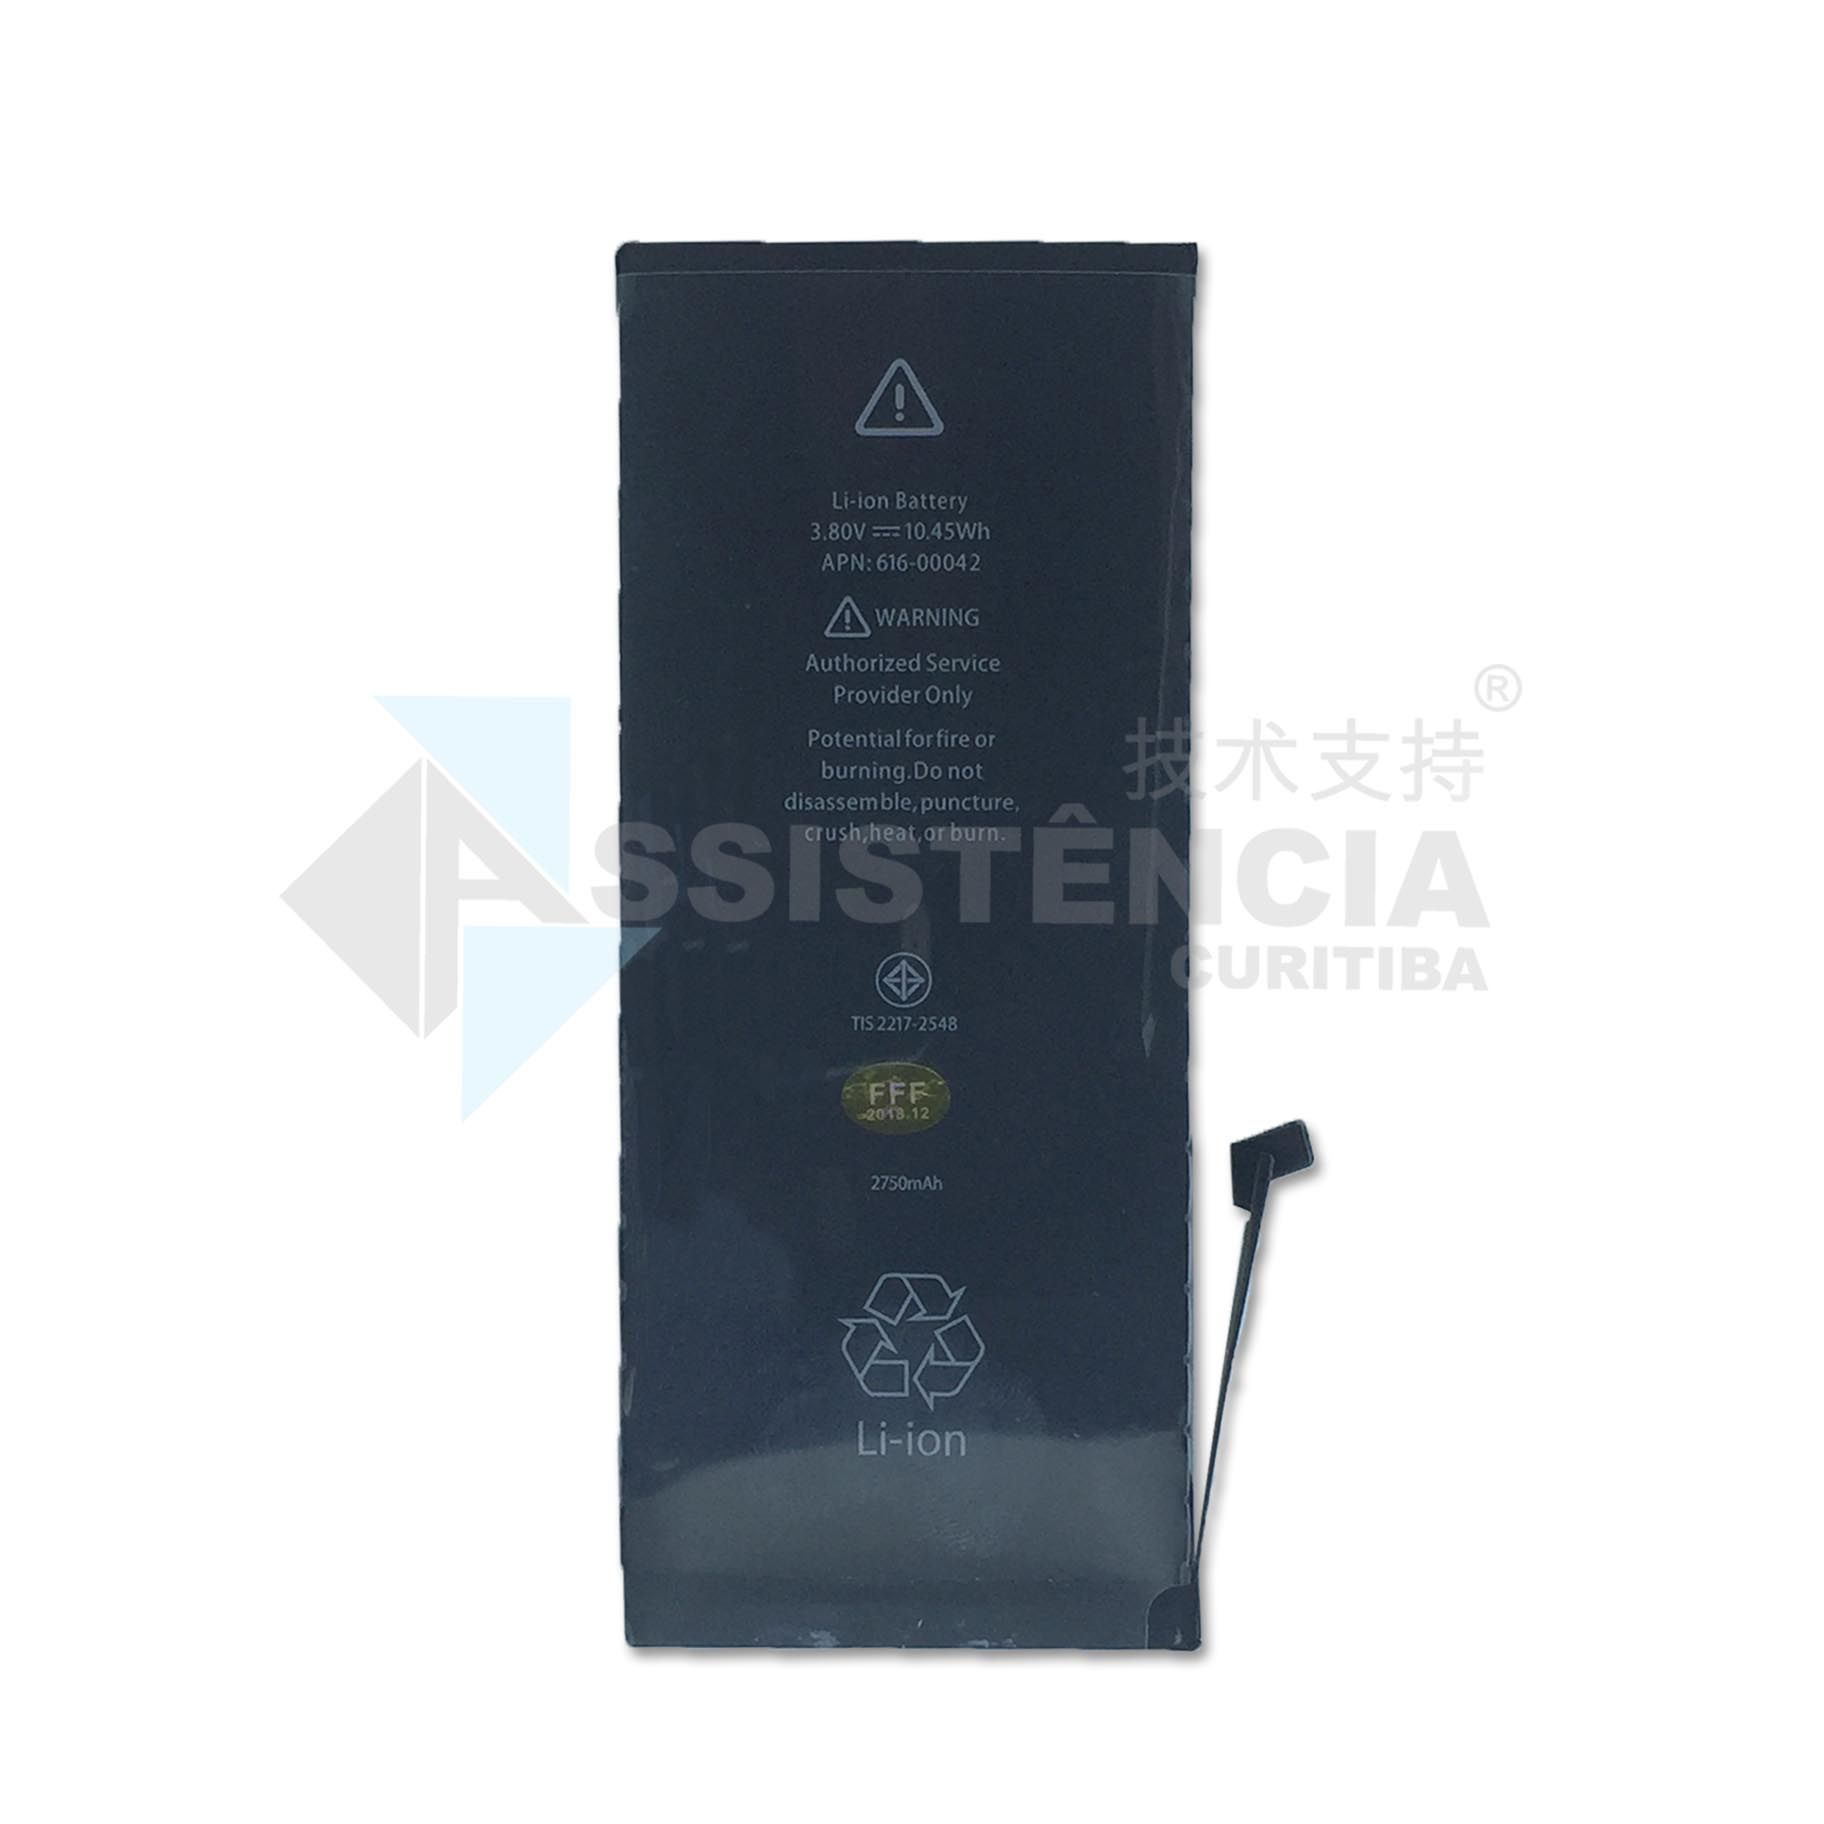 BATERIA CELULAR APPLE IPHONE 6S PLUS ORIGINAL